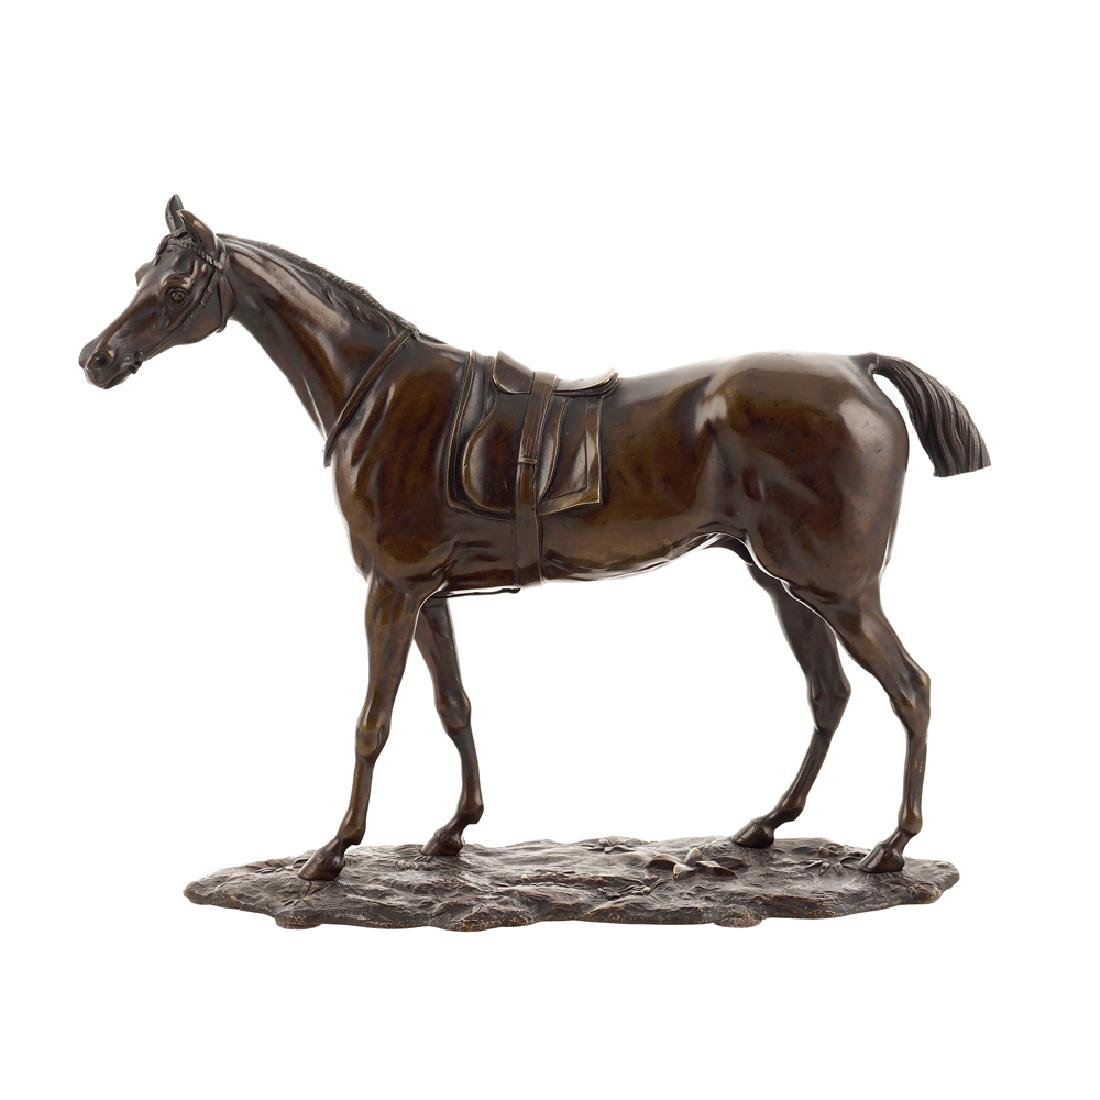 A patinated bronze sculpture France 19th century